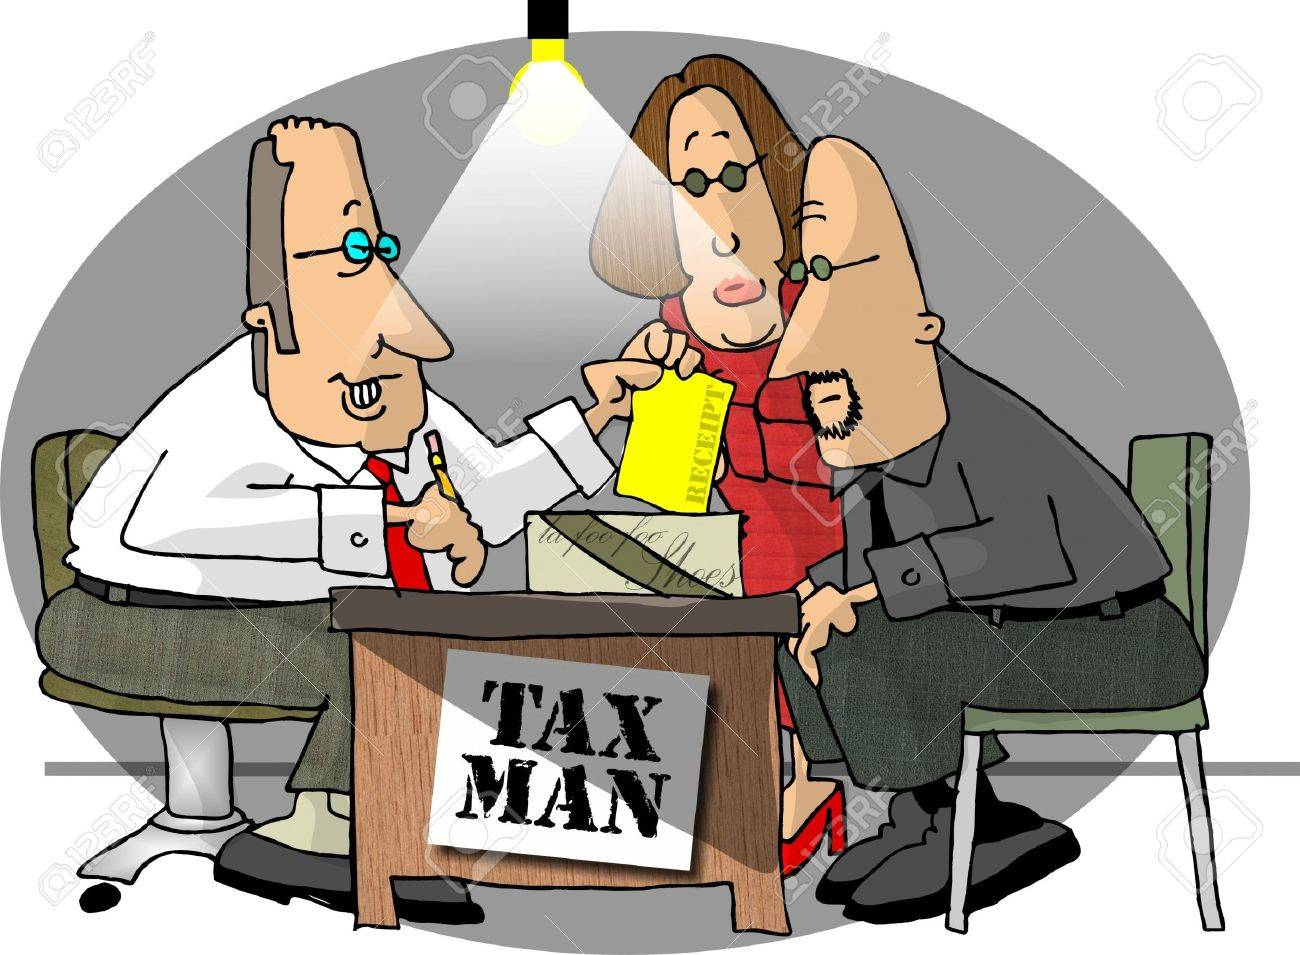 TAX                     MAN SHARES INFO ON YOU IF YOU ASK. HOW TO GET IT